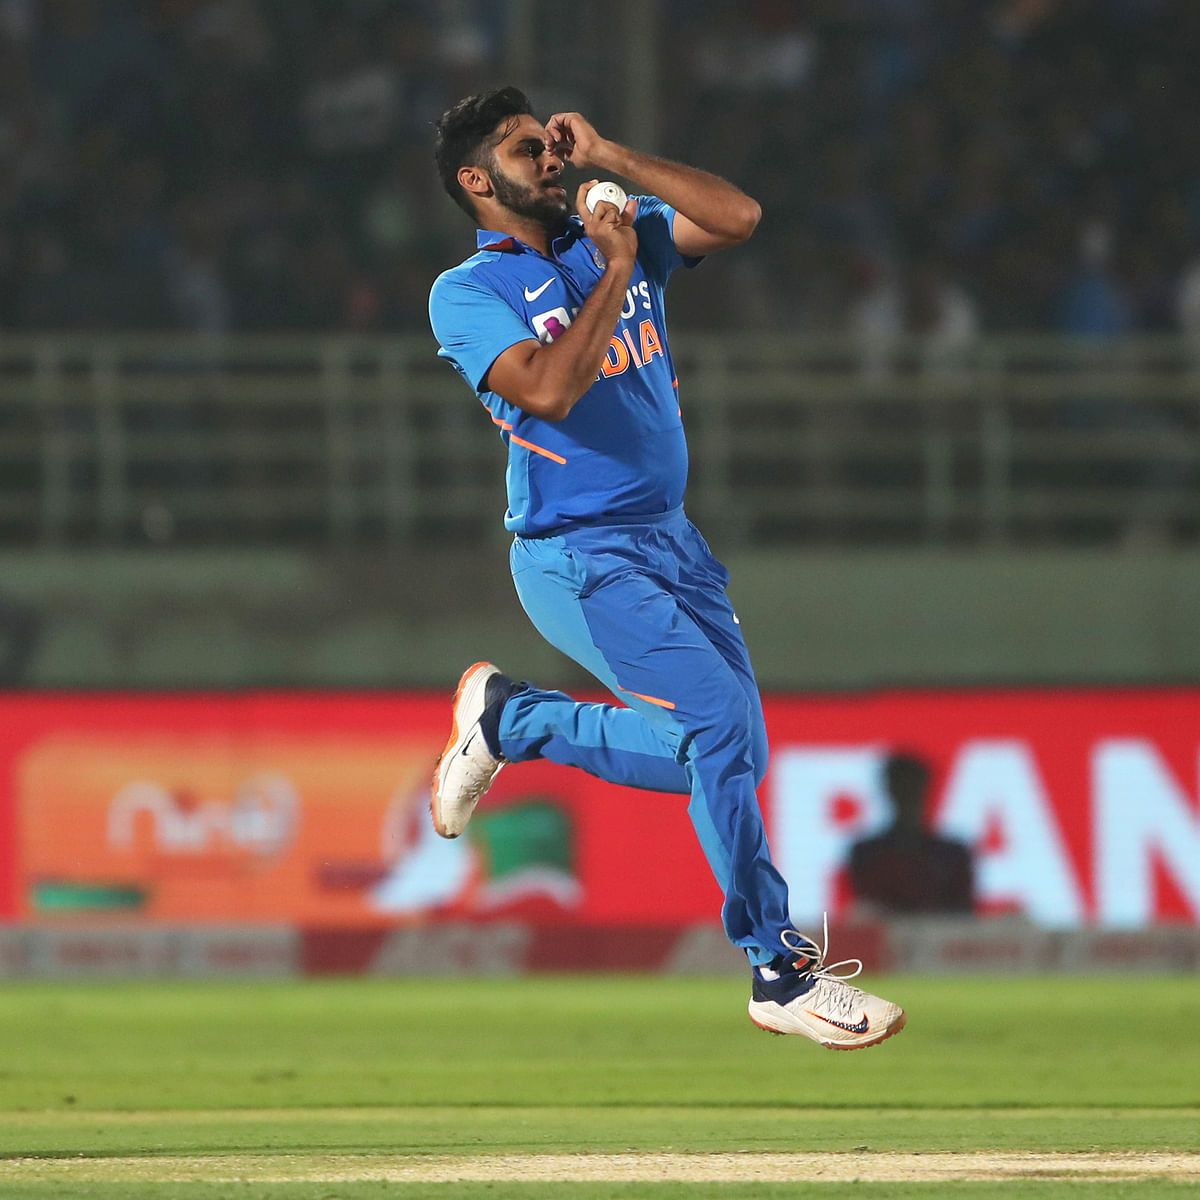 'Start playing Hanuman Chalisa when he comes to bowl': Twitterati troll pacer Shardul Thakur after poor performance against NZ